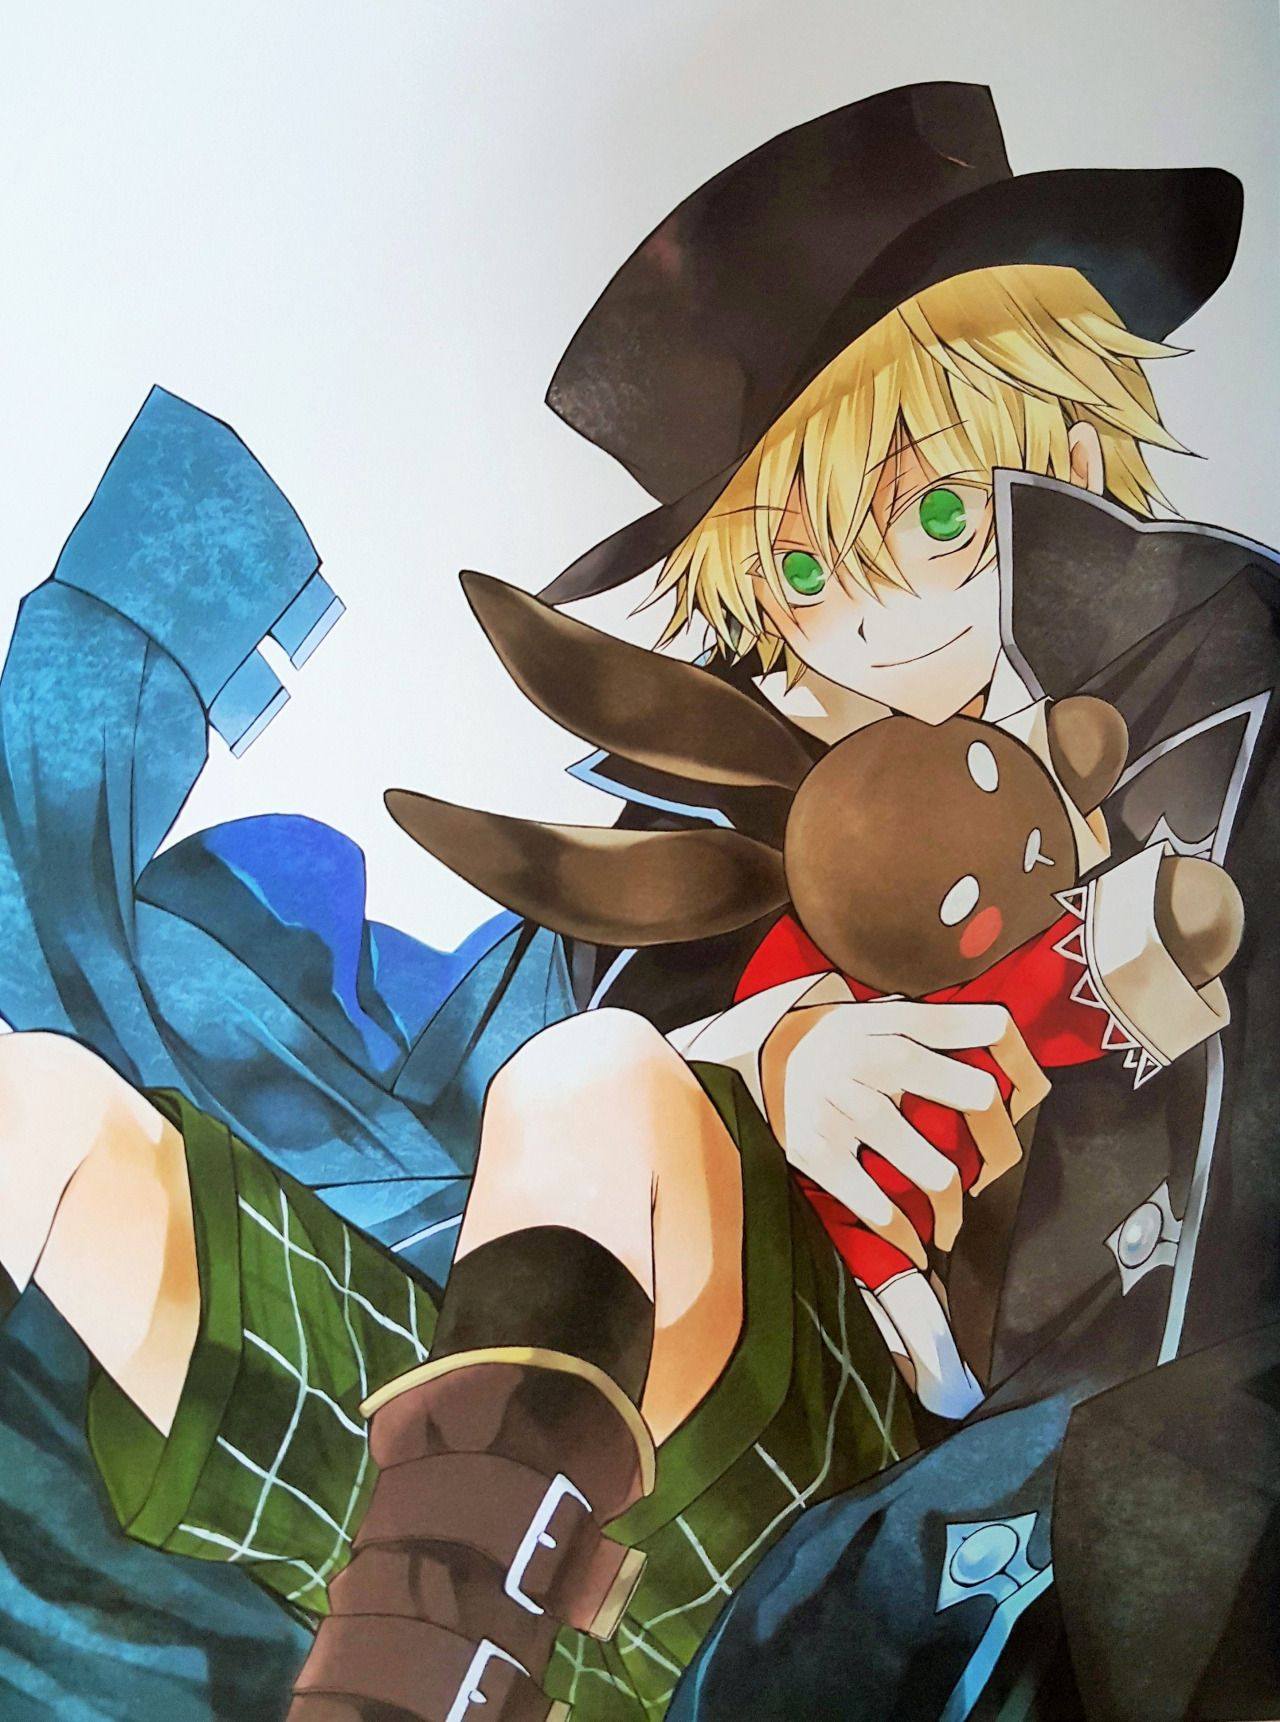 Oz in gil's hat and jacket and alice the b rabbit plush X3 I seriously can't ever get over Jun mochizuki's art it's so amazing <3